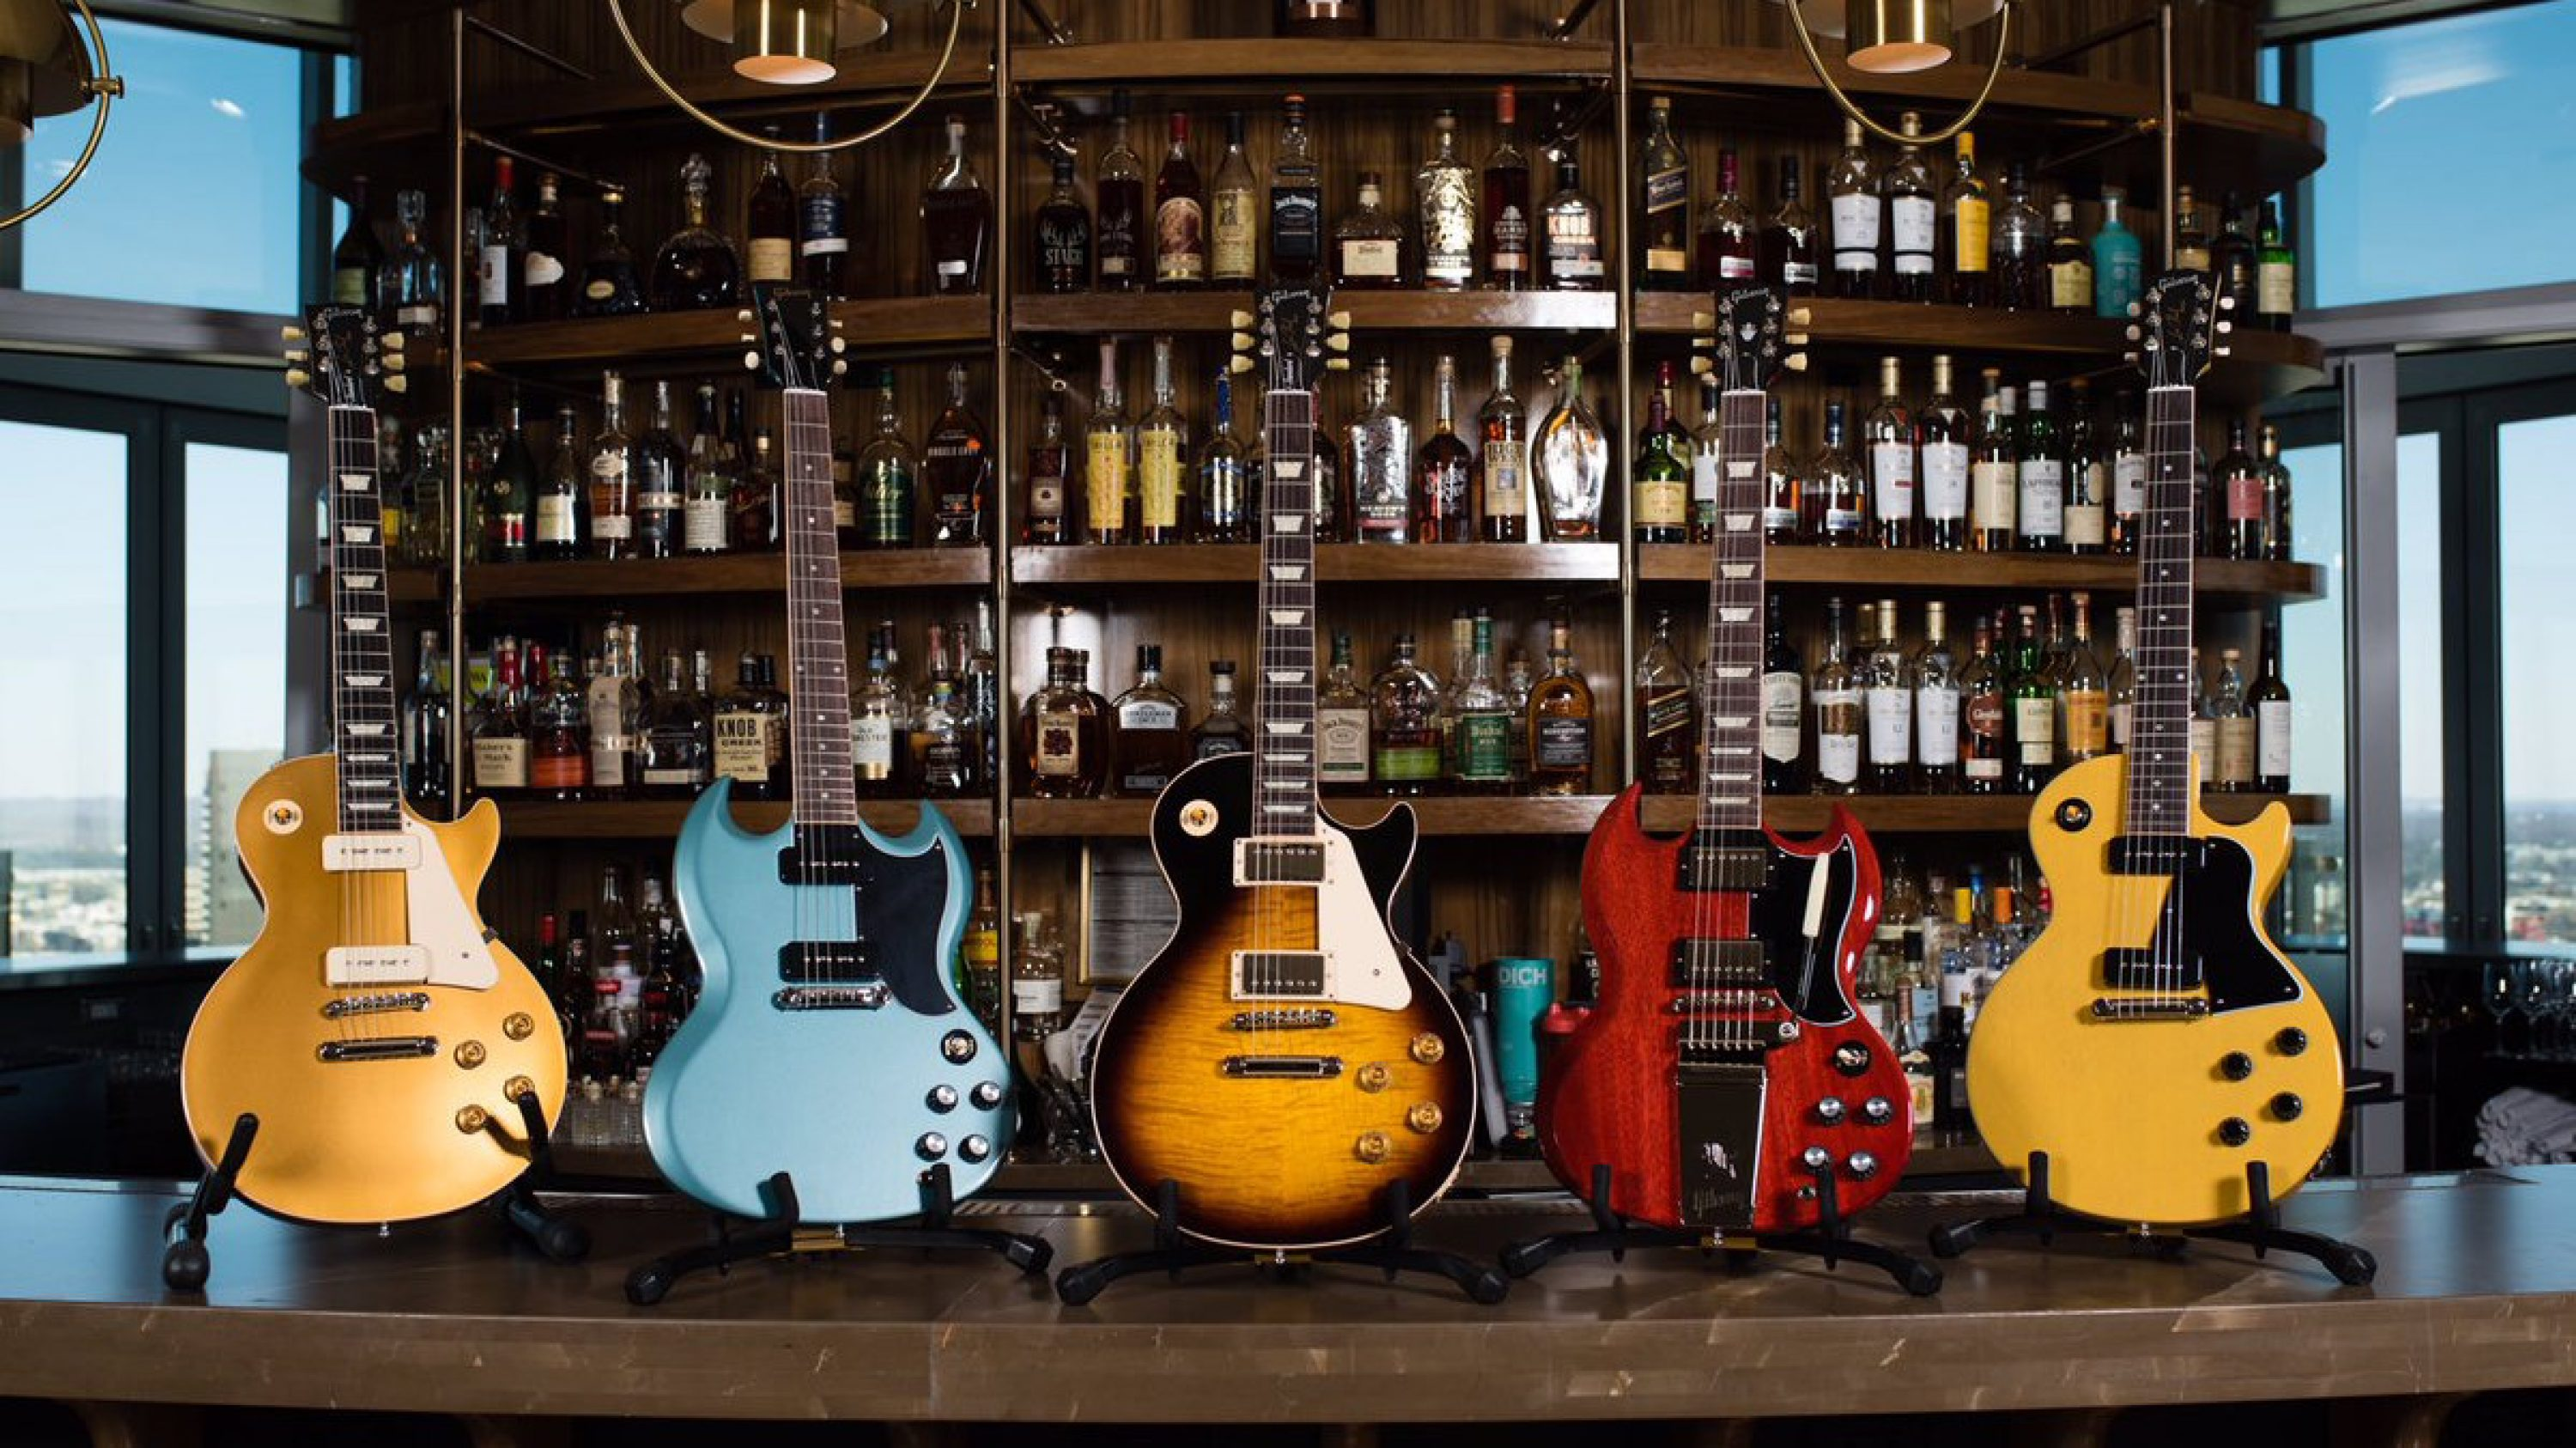 Gibson's 2019 Guitar and Bass Lineup: An In-Depth Look